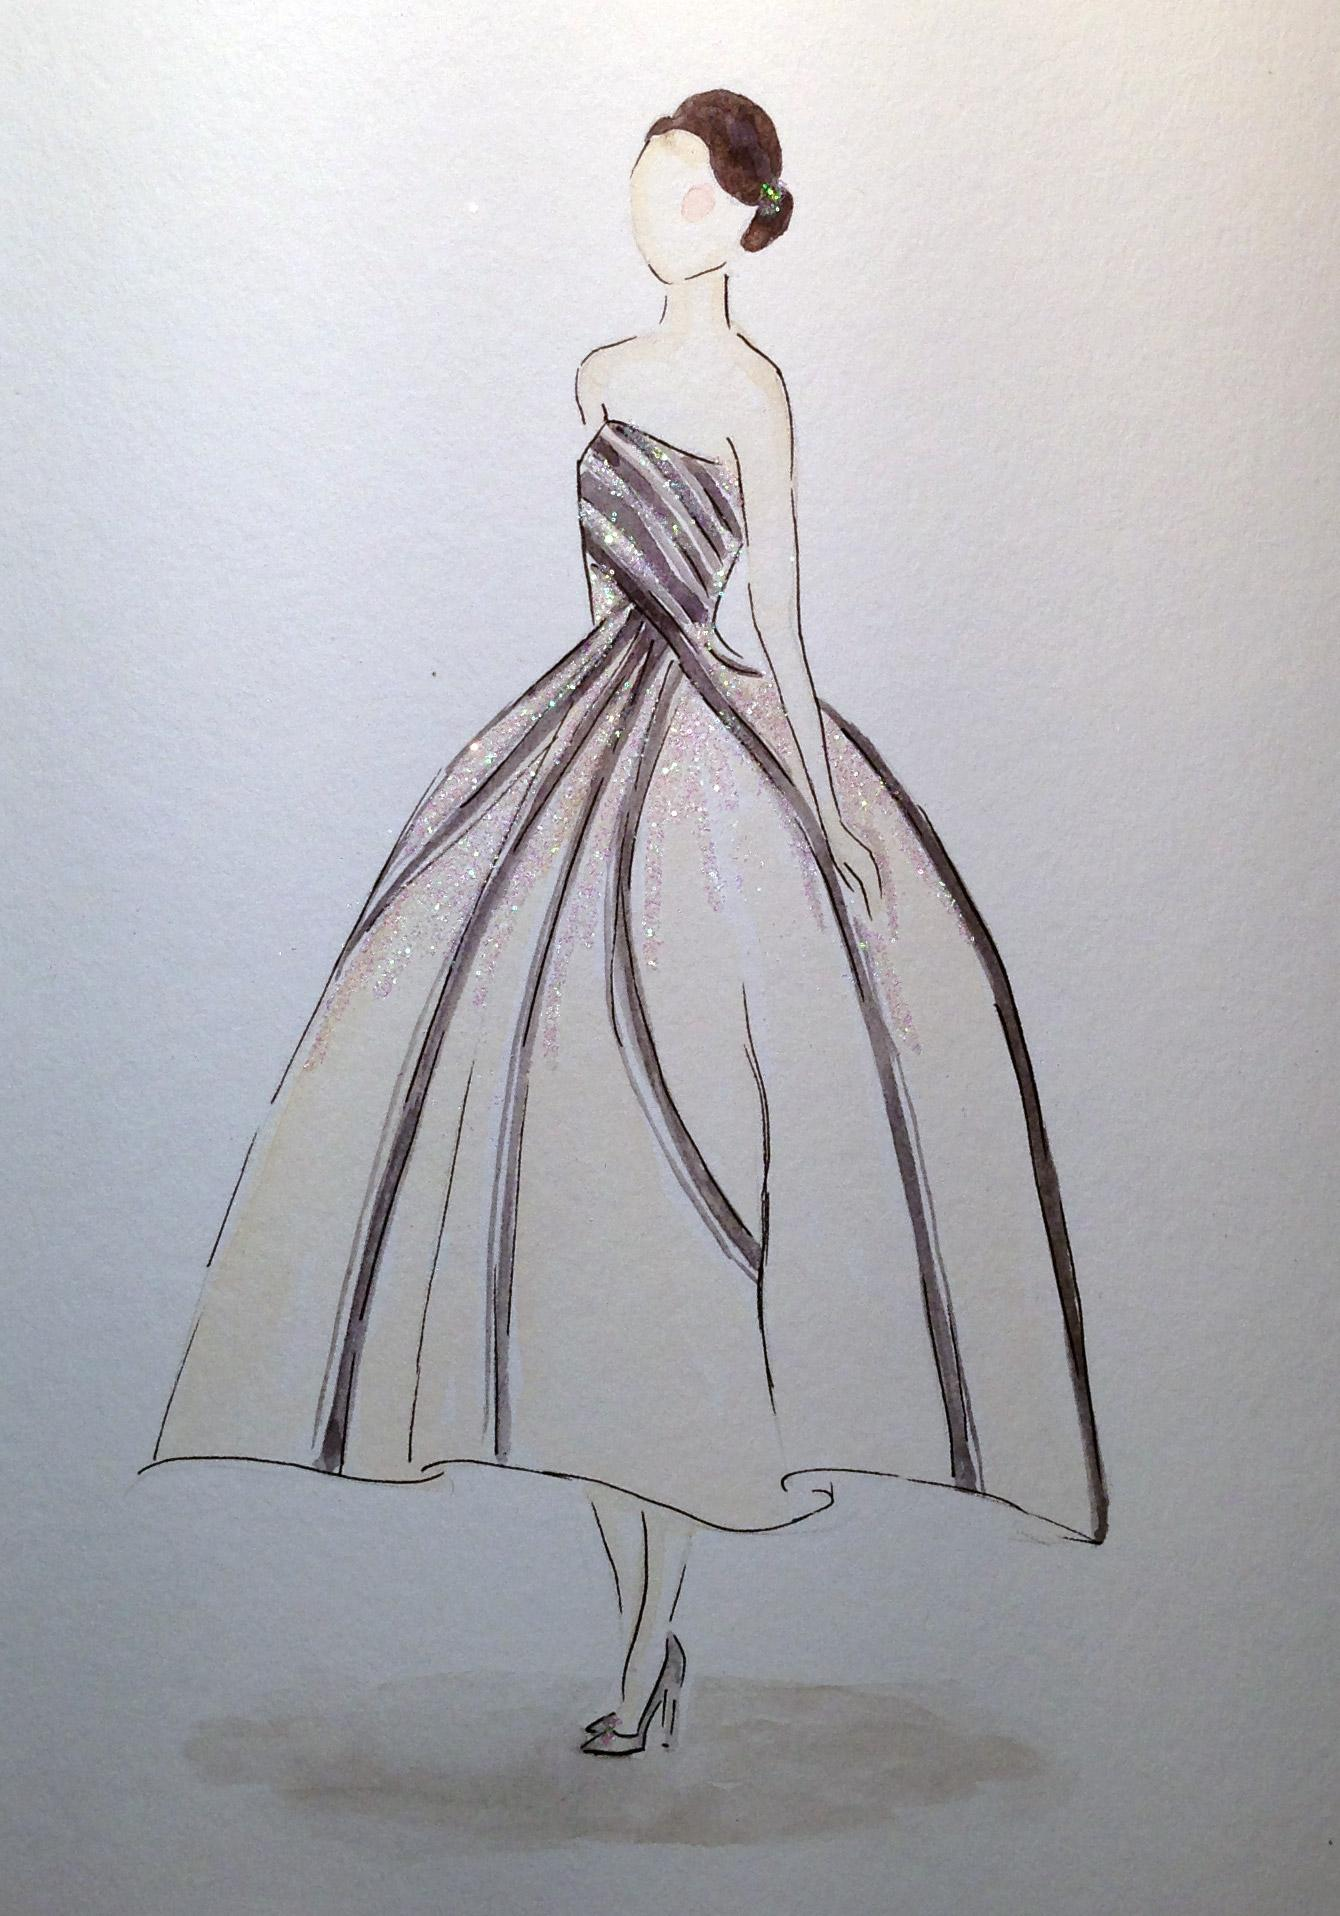 SS14 Inspiration - image 10 - student project